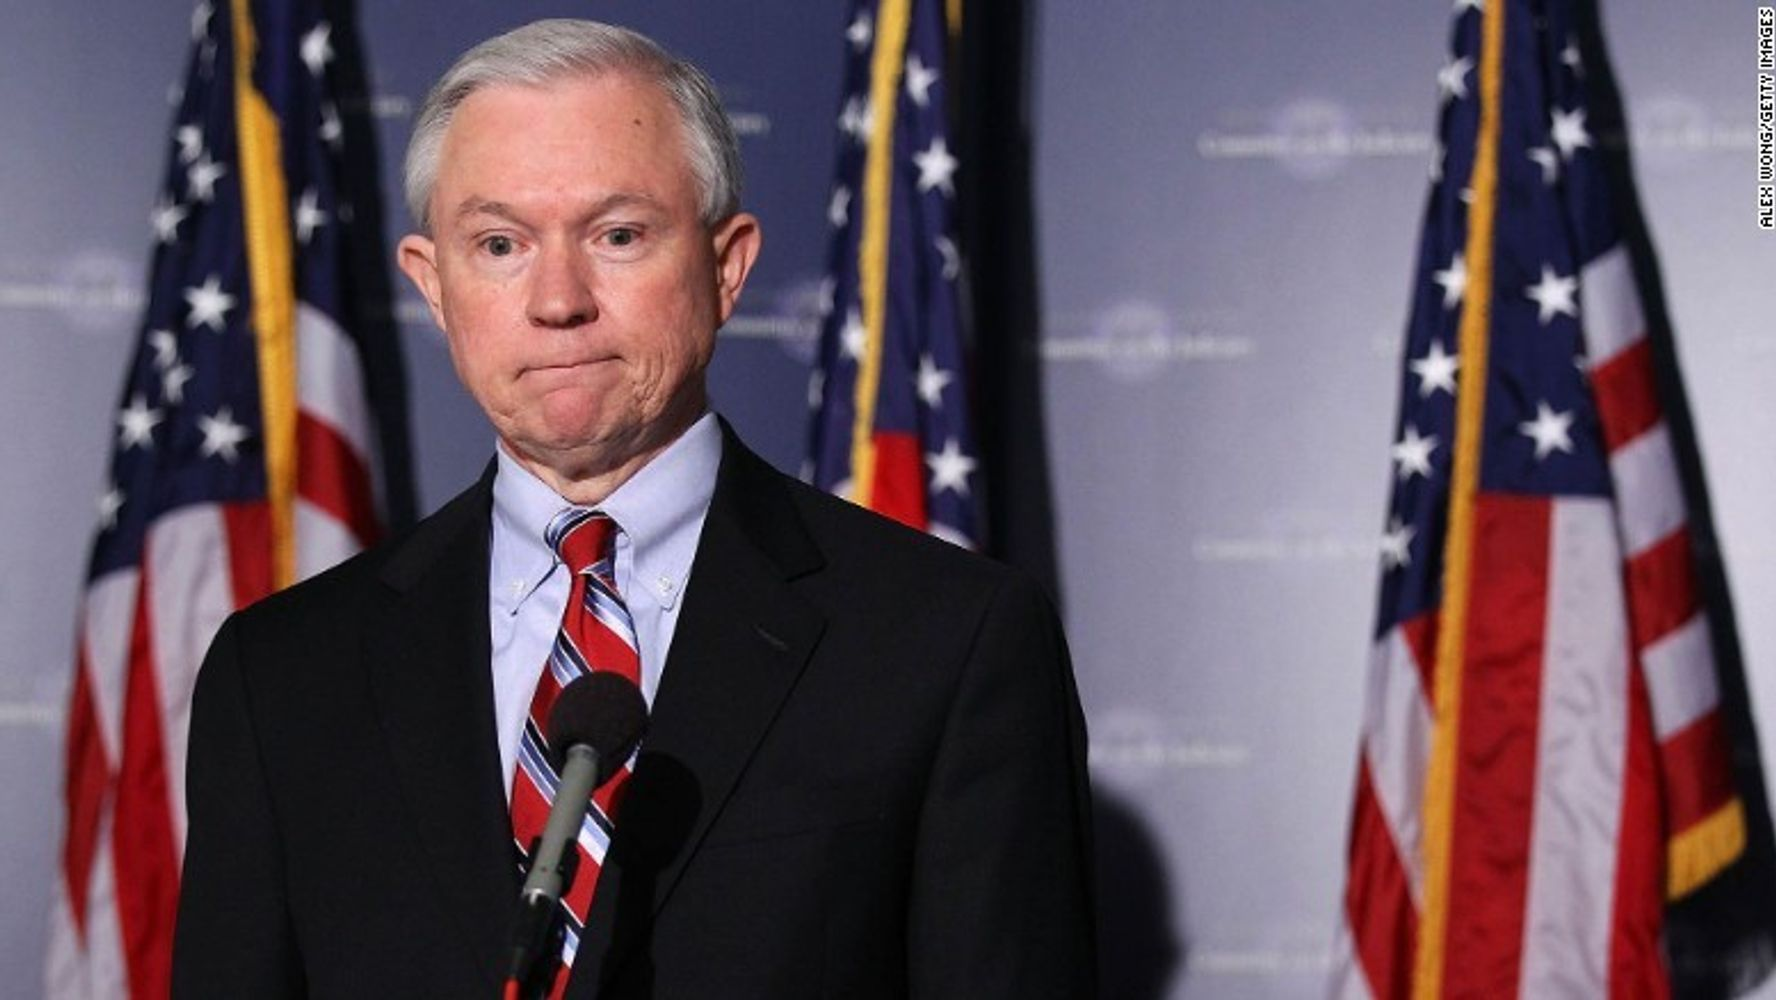 An Open Letter To Jeff Sessions From A Doctor Whose Patients Rely On Medical Marijuana